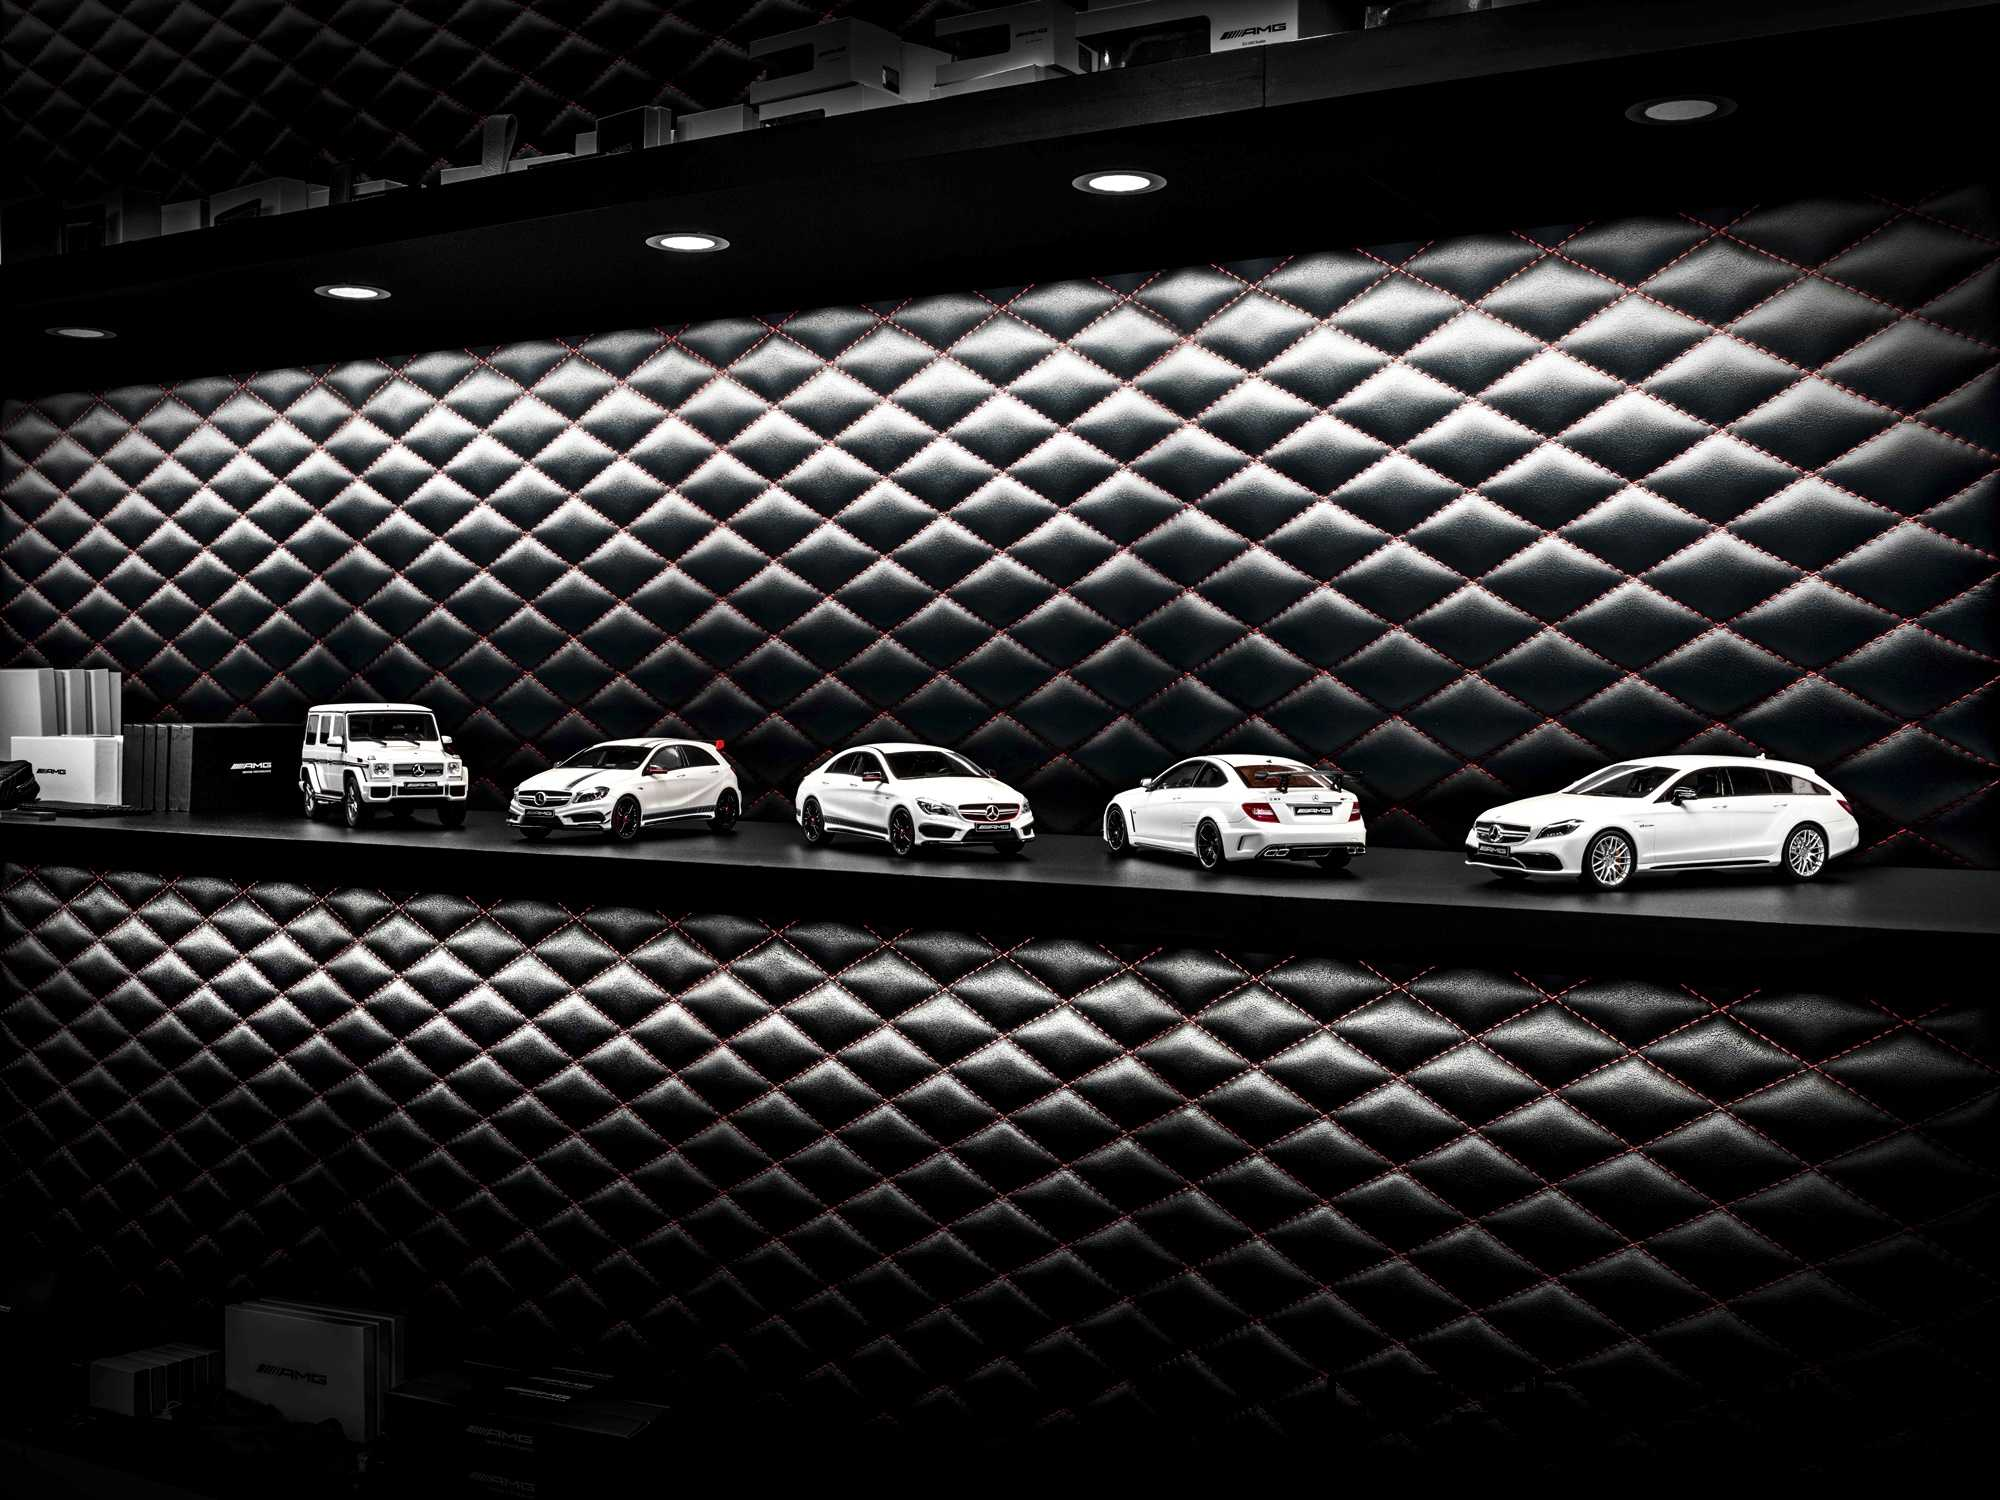 Gift ideas amg white series scale model cars for Scale model ideas